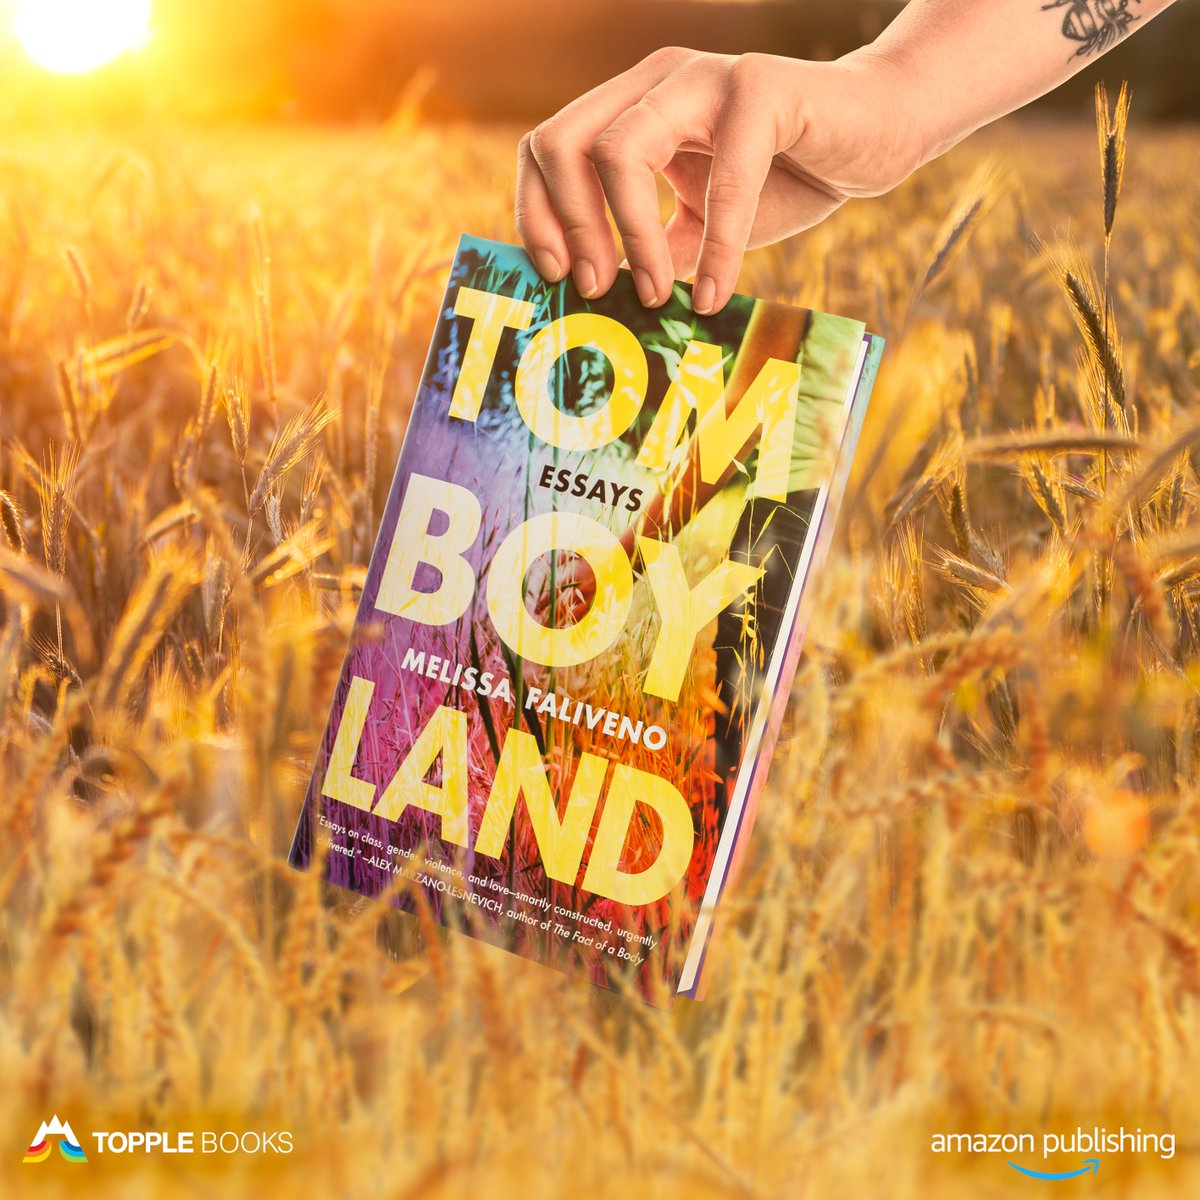 Sometimes there is no one word for who we are. @mlfaliveno's striking collection of personal essays explores gender and identity as the first book from TOPPLE Books. http://Amazon.com/Tomboyland pic.twitter.com/rLTiRXsEvH